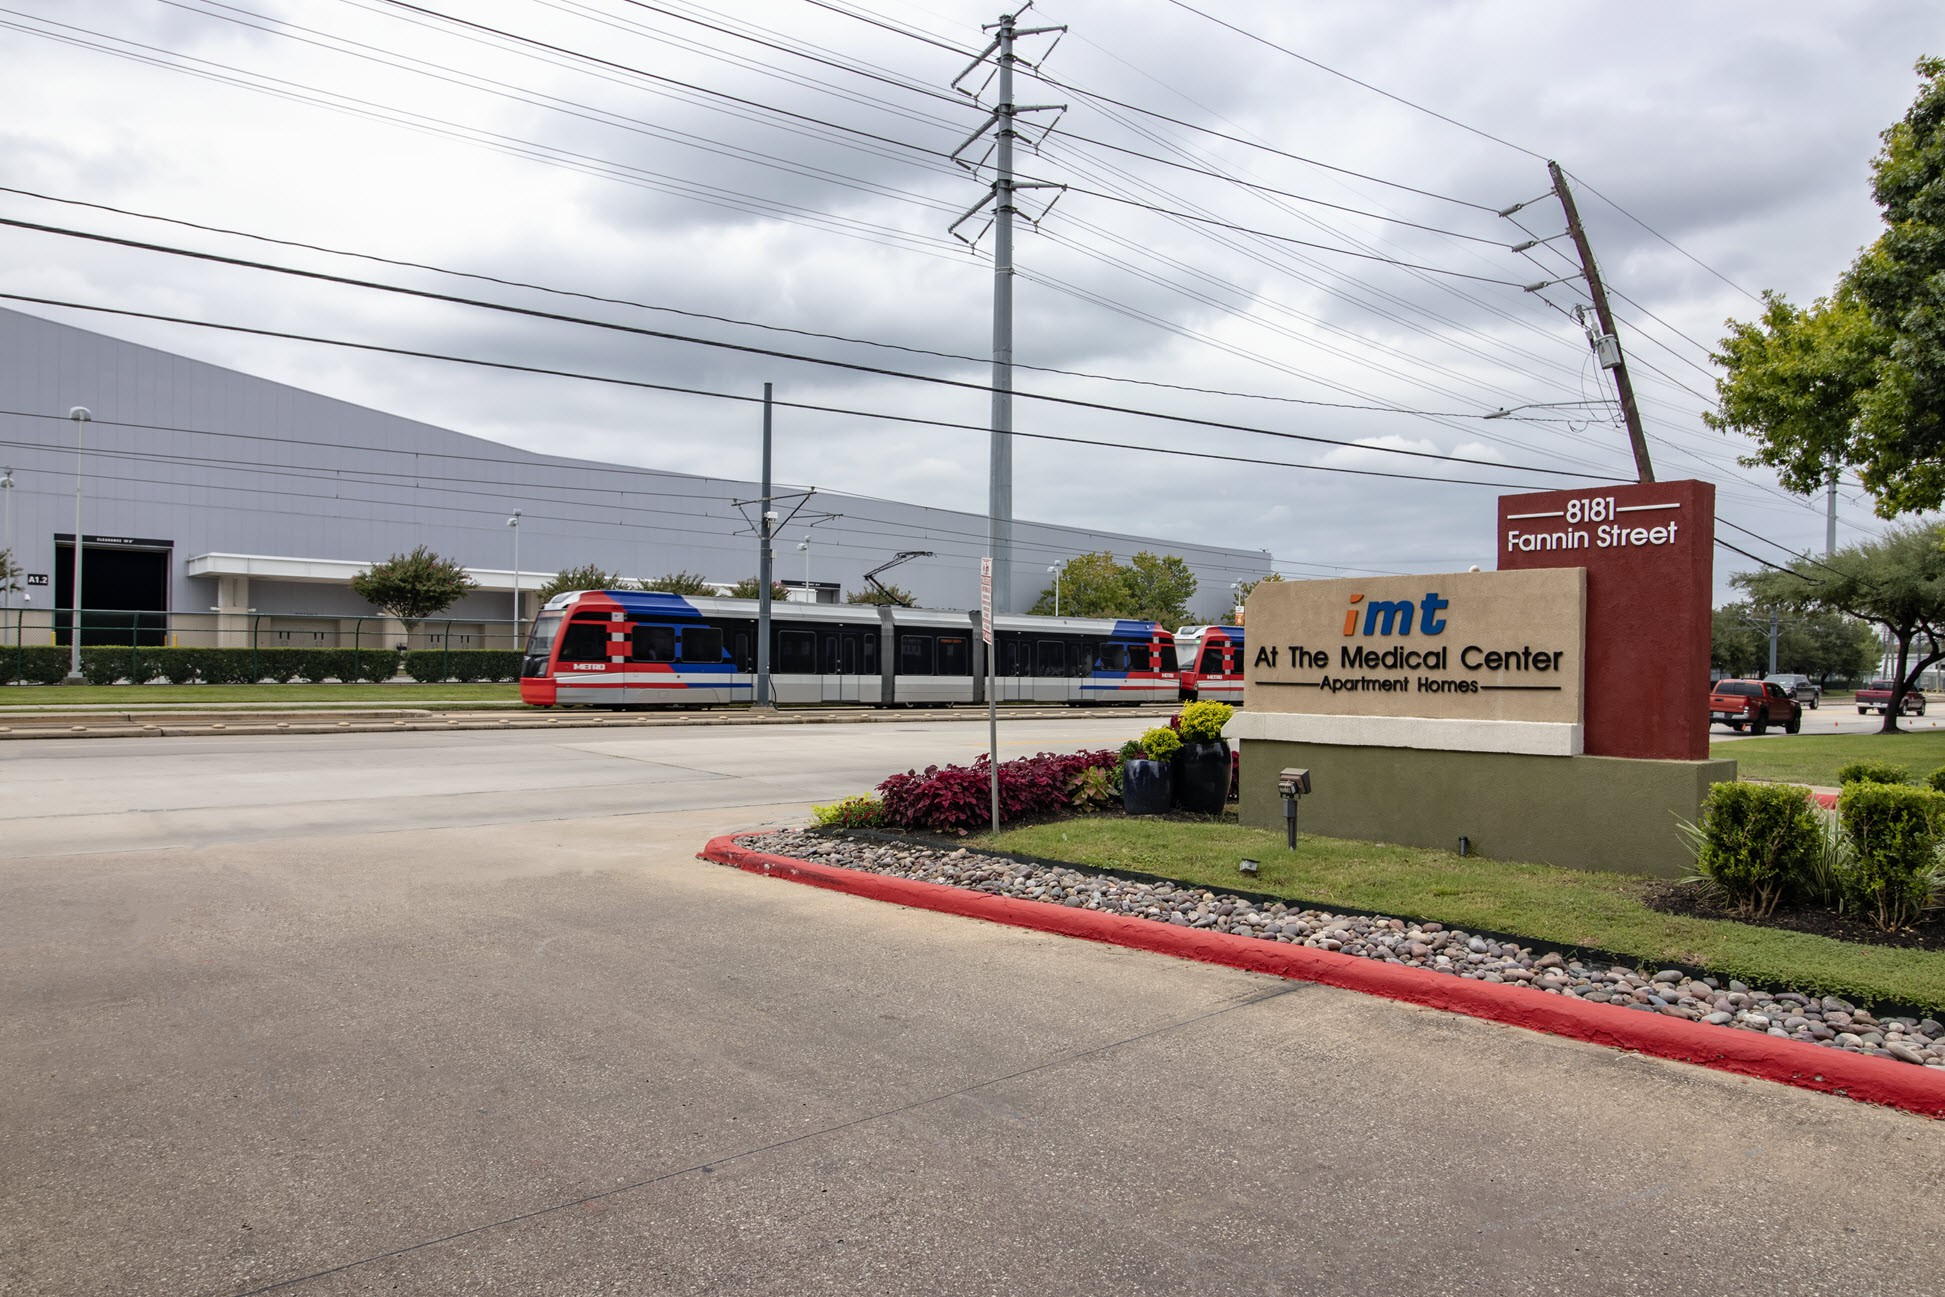 IMT at the Medical Center